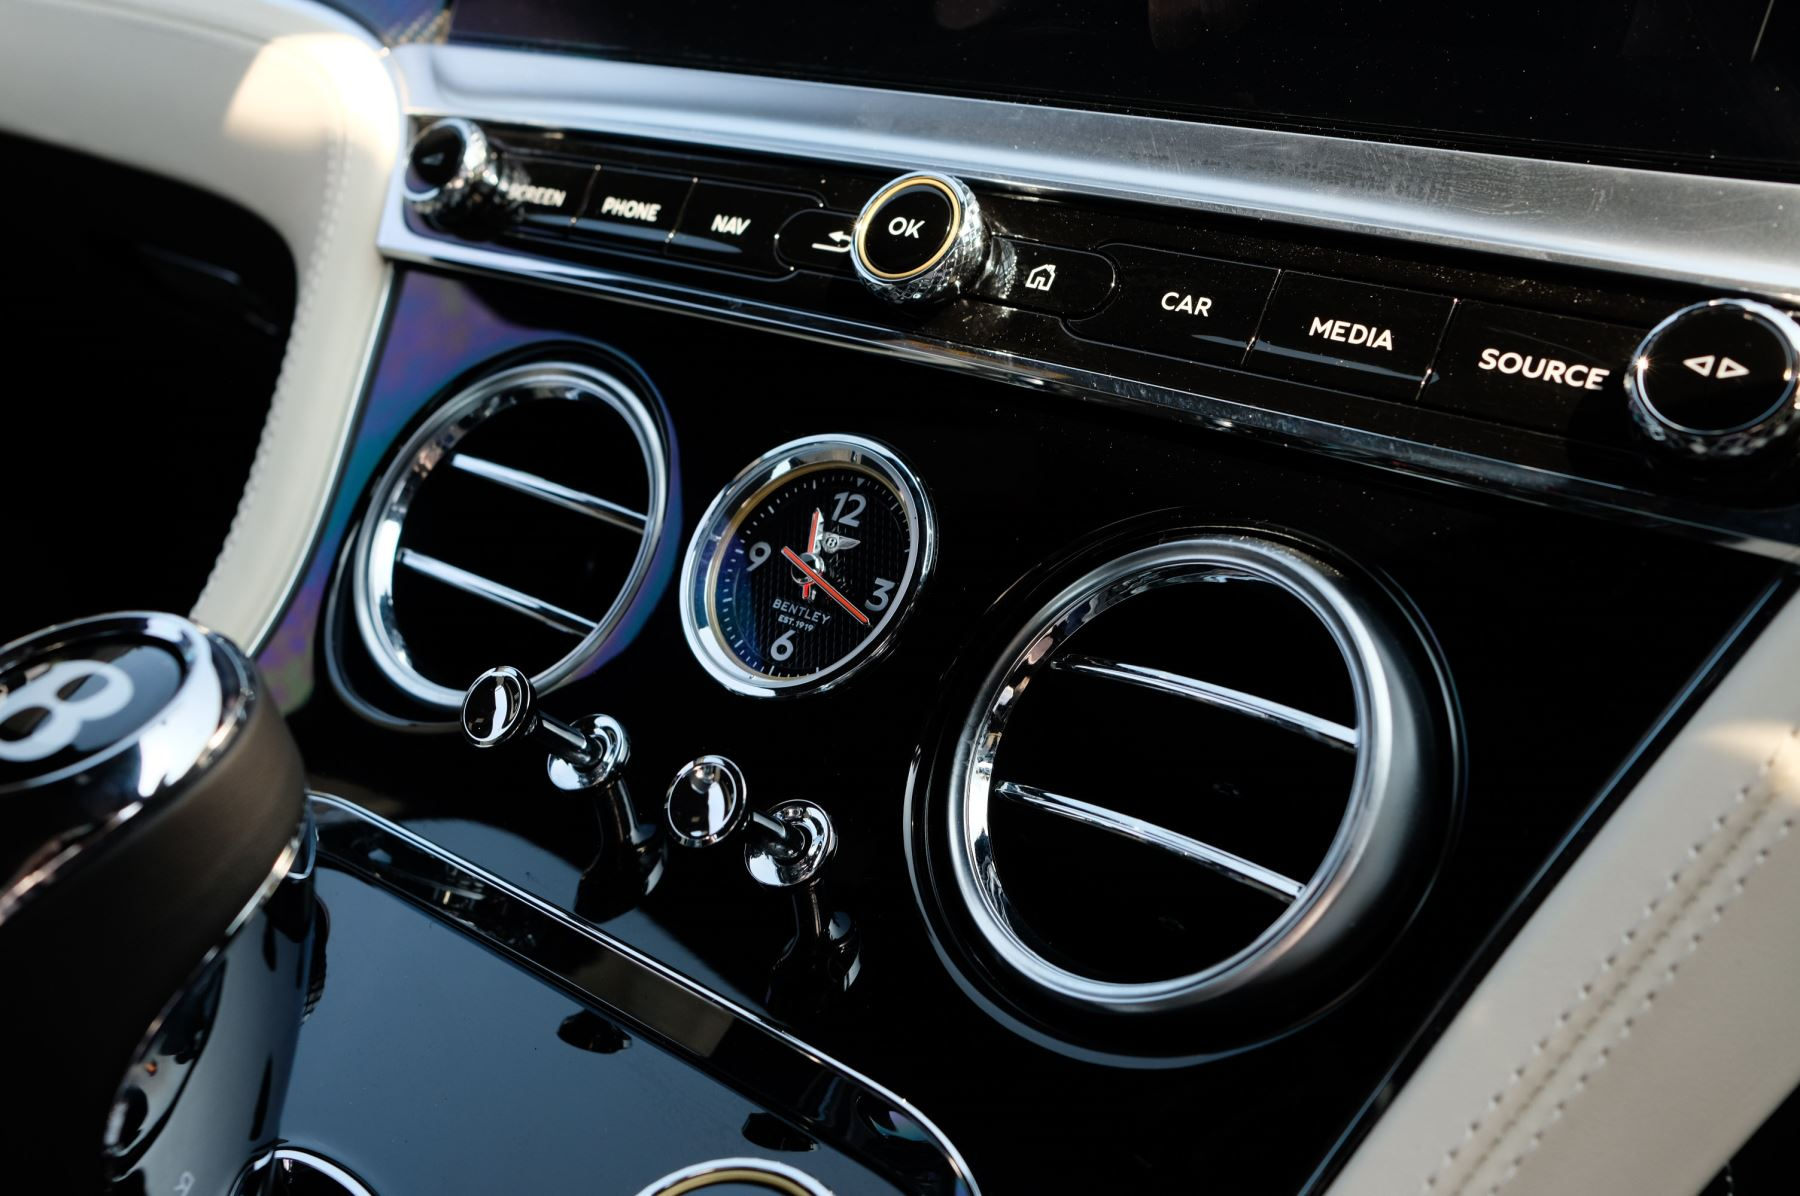 Bentley Continental GTC 4.0 V8 - Mulliner Driving Specification and Blackline Specification with 22 Inch Alloys image 25